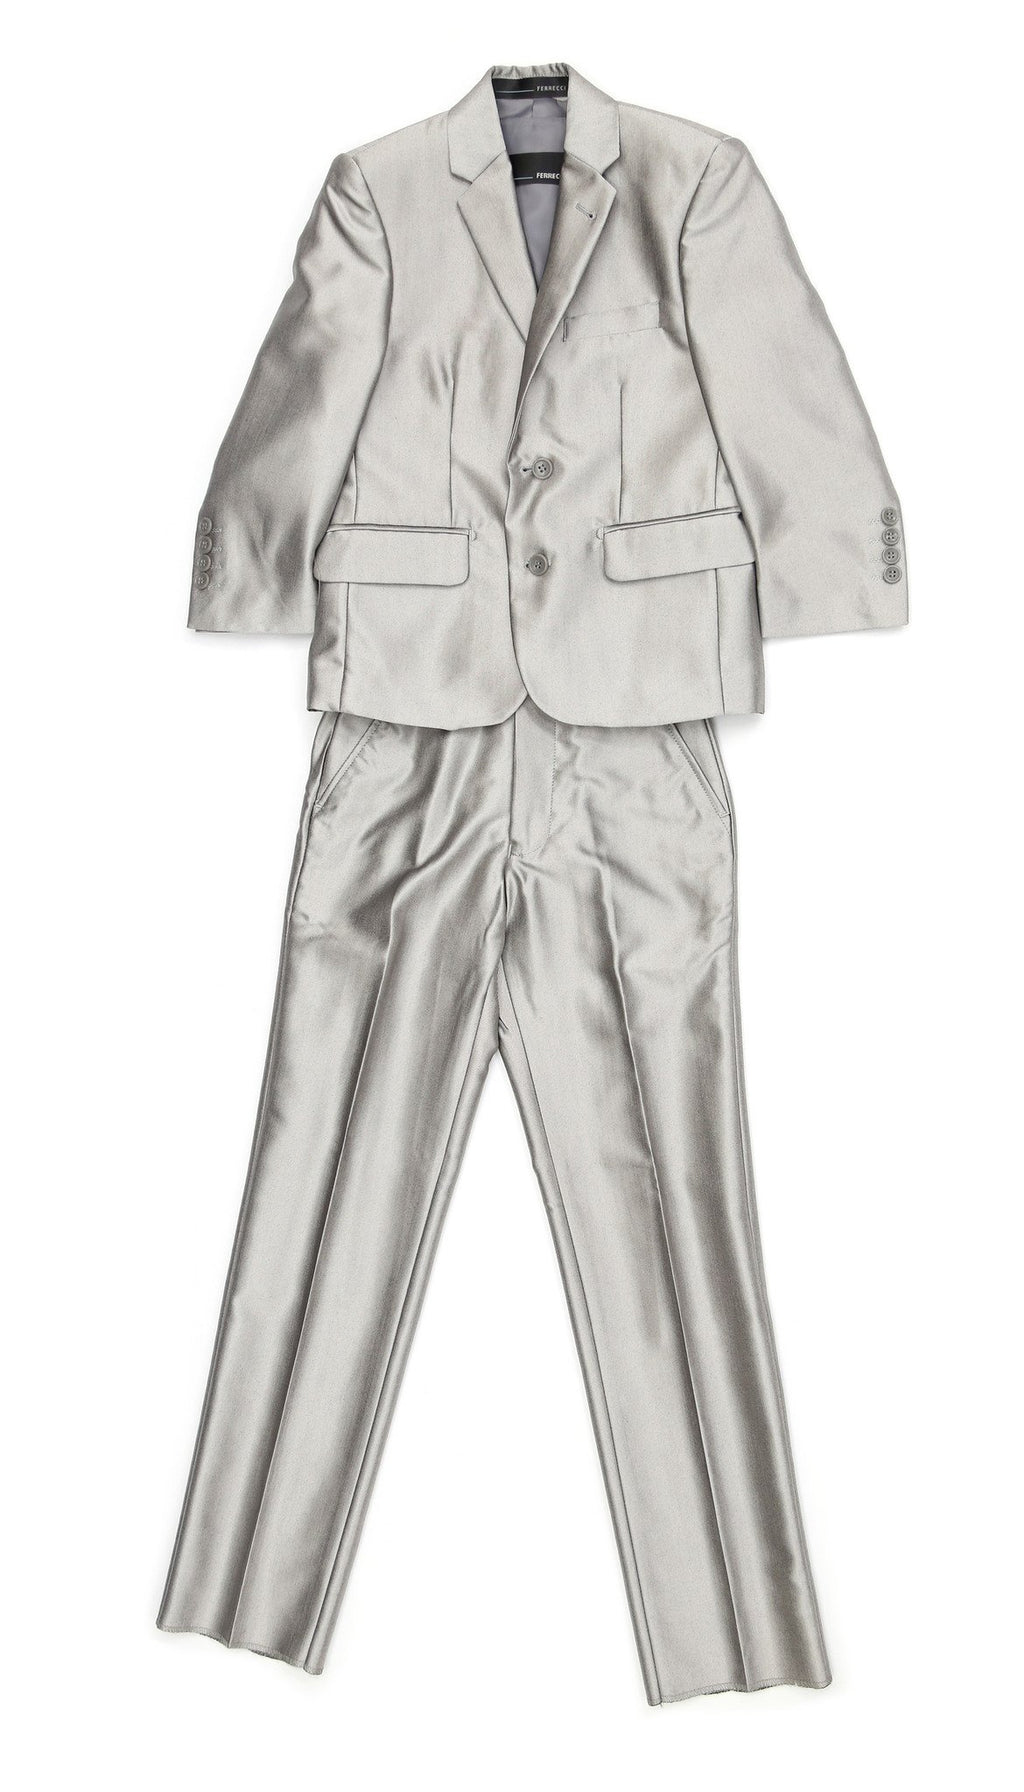 Boys Silver Shiny Sharkskin Oxford 3pc Vested Suit - Giorgio's Menswear